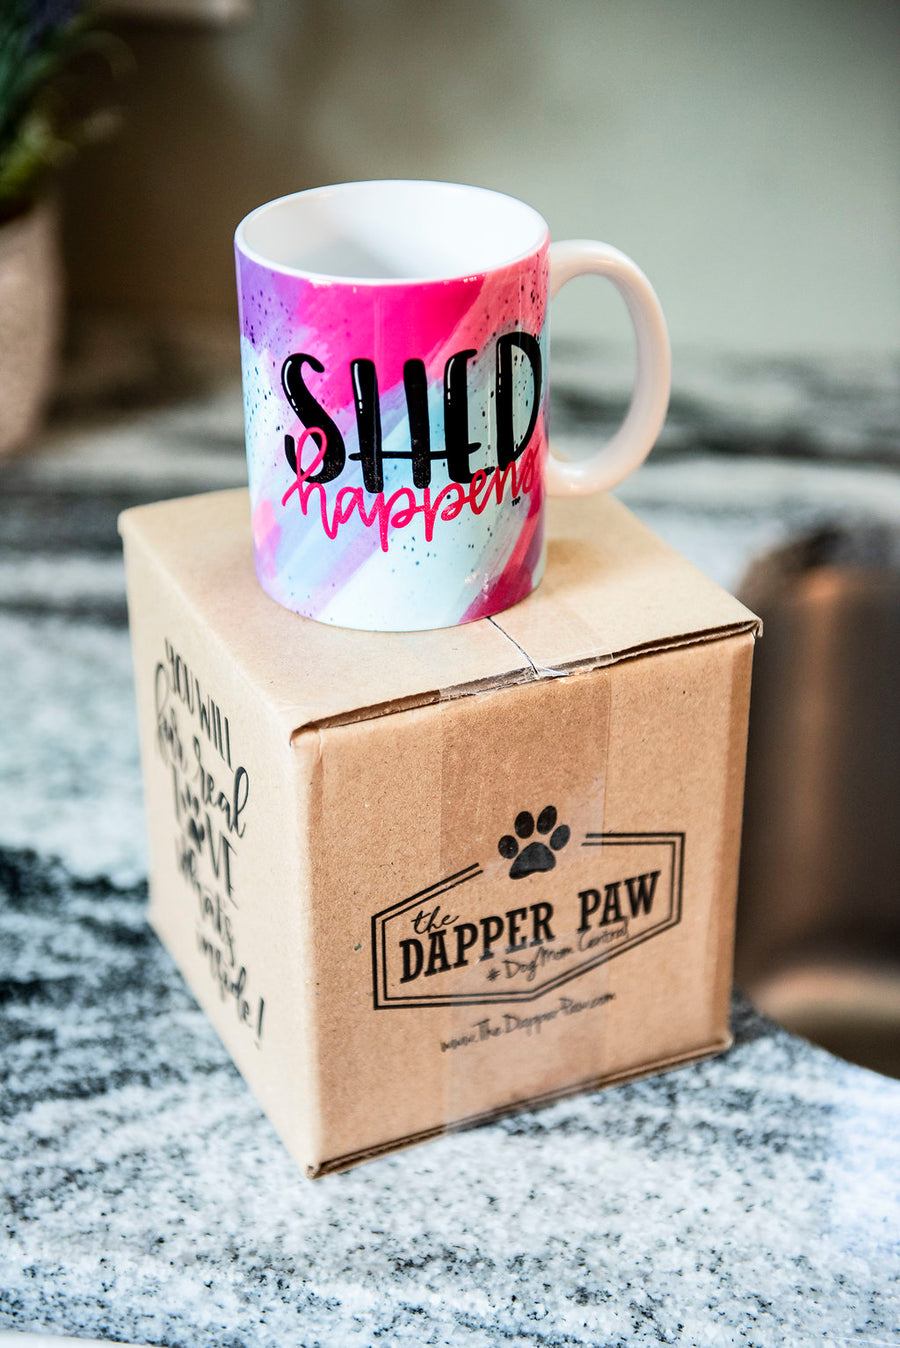 Full Color Shed Happens Coffee Mug - The Dapper Paw